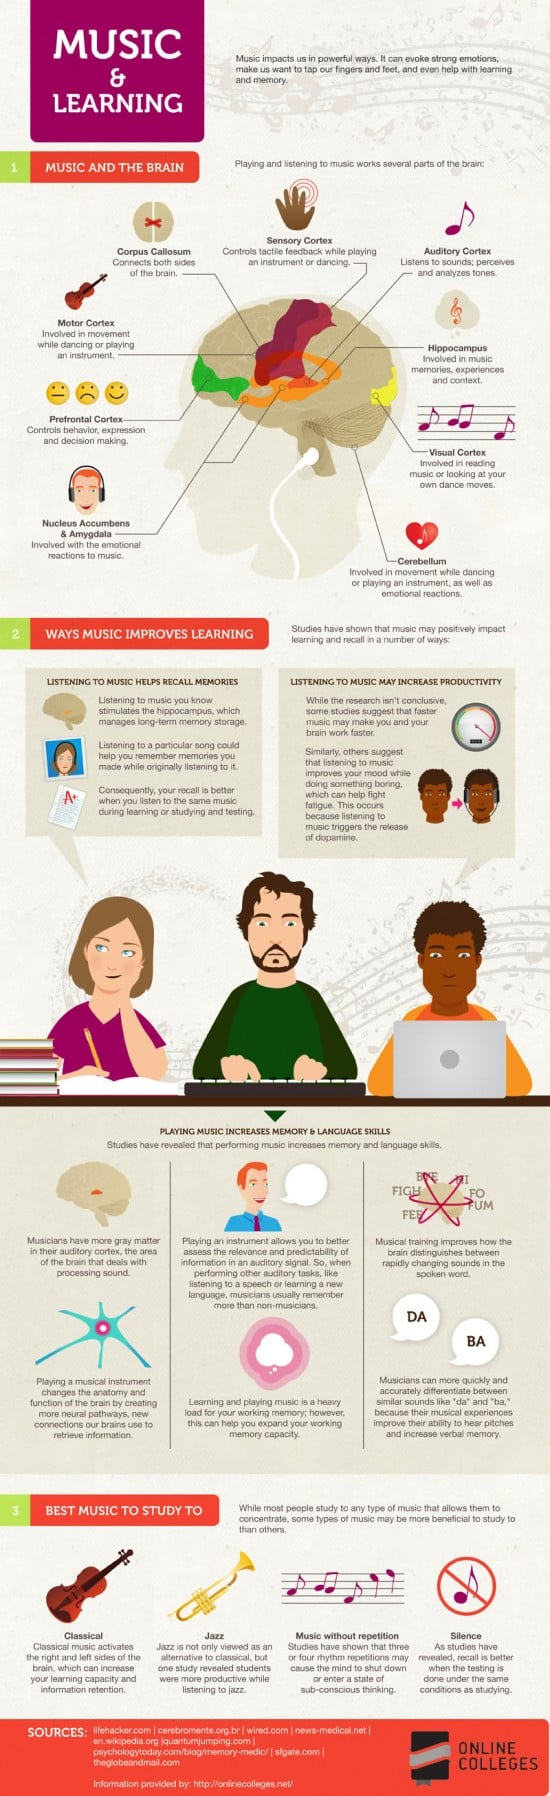 Musics Effect on Learning Infographic